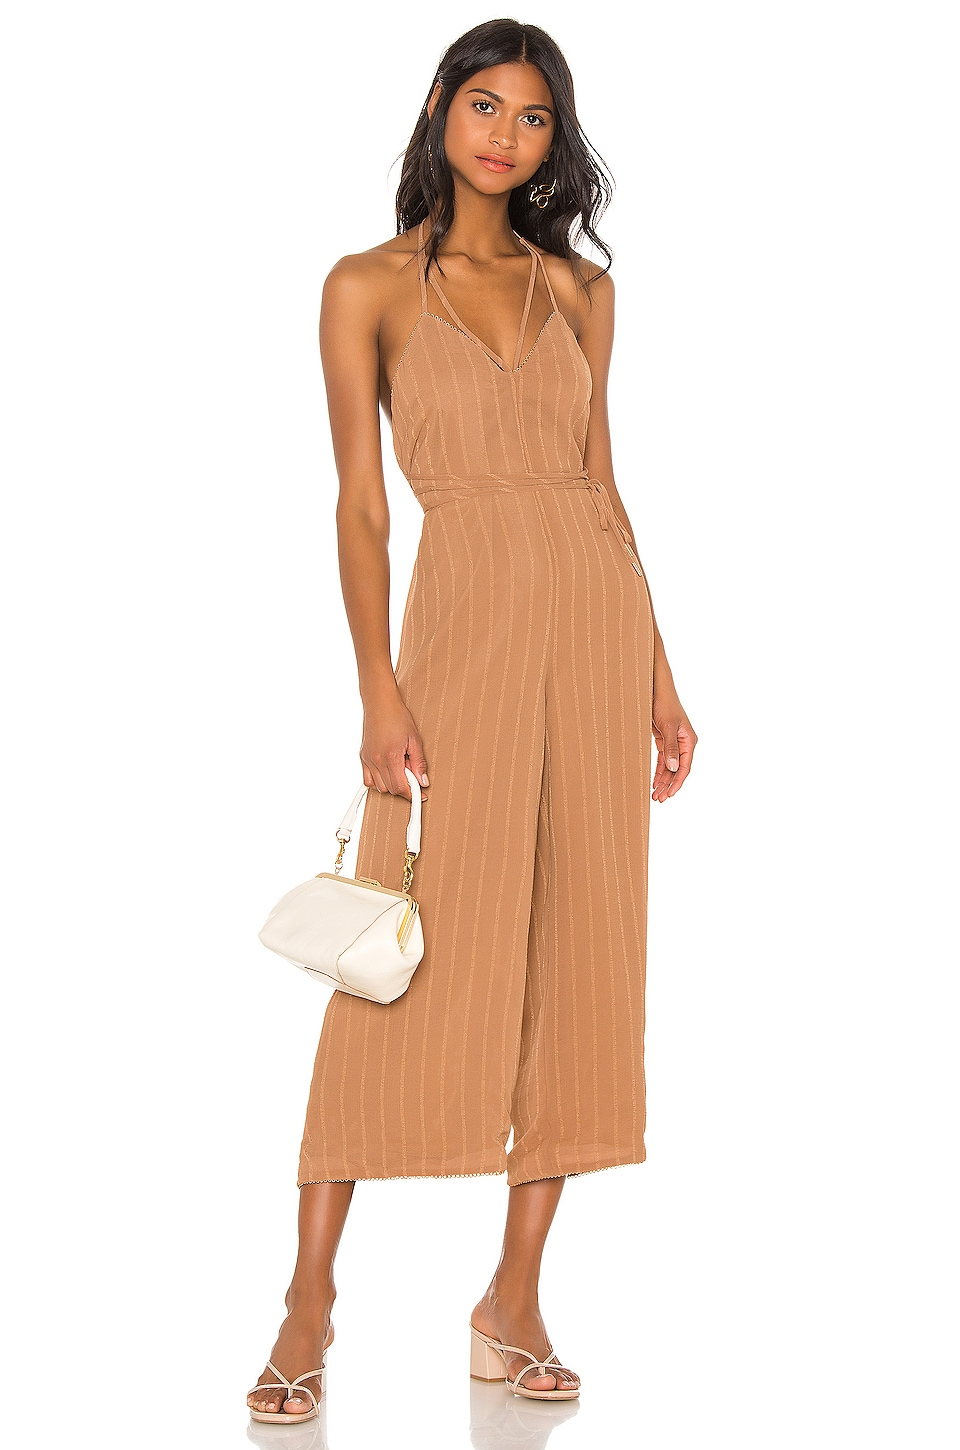 House of Harlow 1960 X REVOLVE Paola Jumpsuit in Tawny Brown